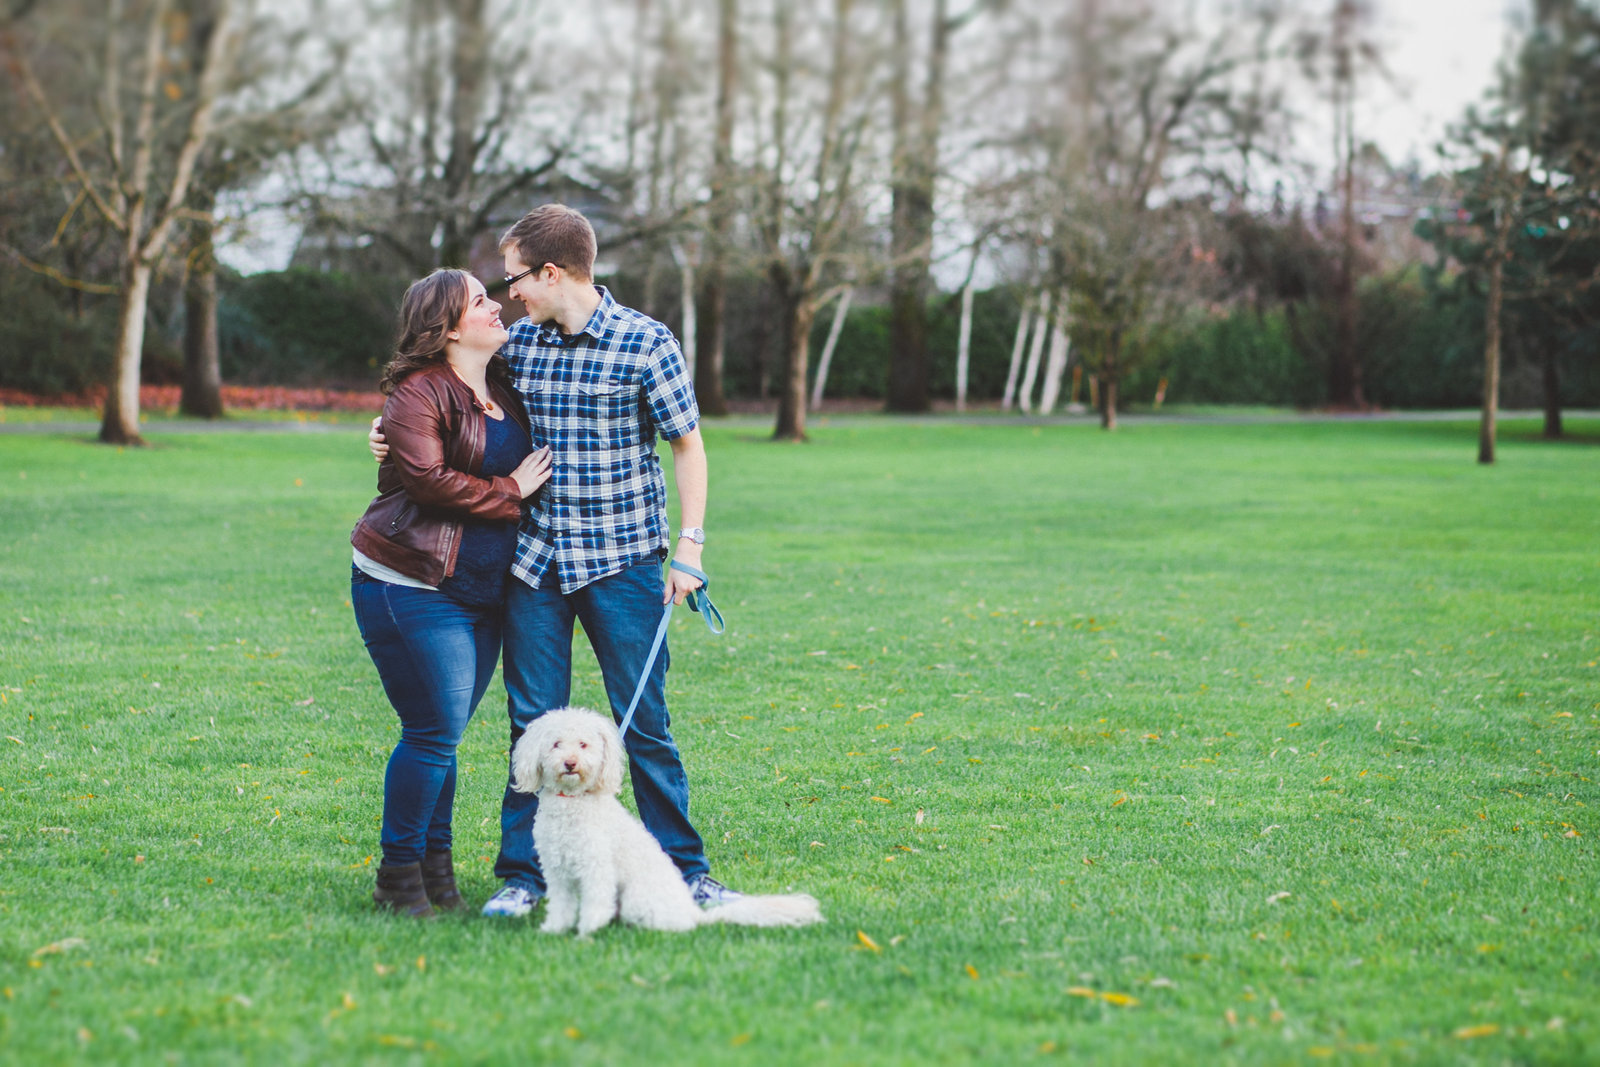 Portland engagement photo with a dog | Susie Moreno Photography